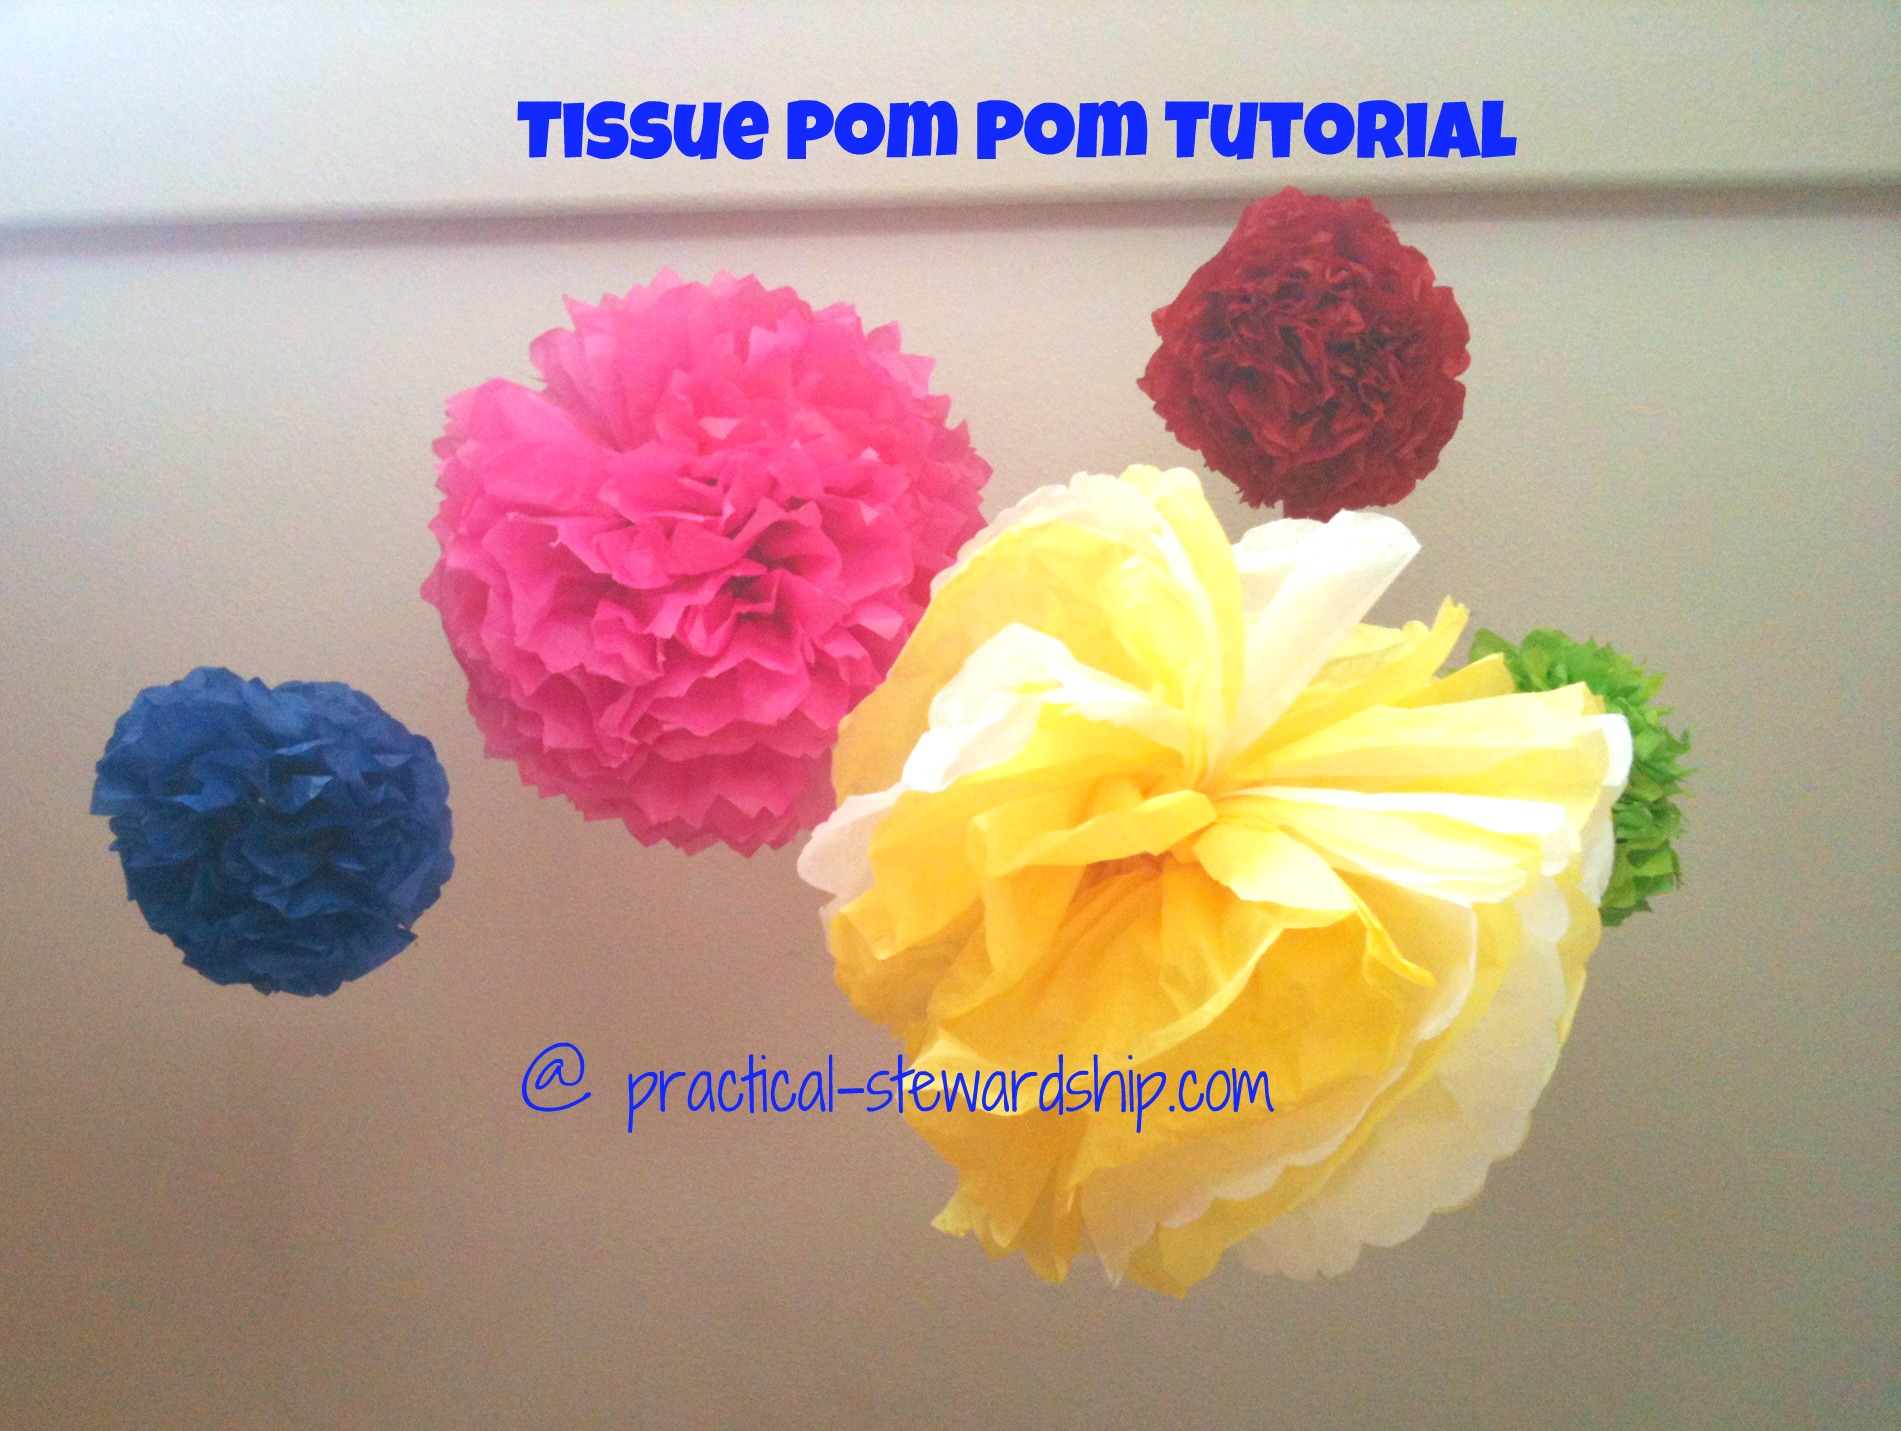 DIY: Tissue Pom Pom Decoration Tutorial